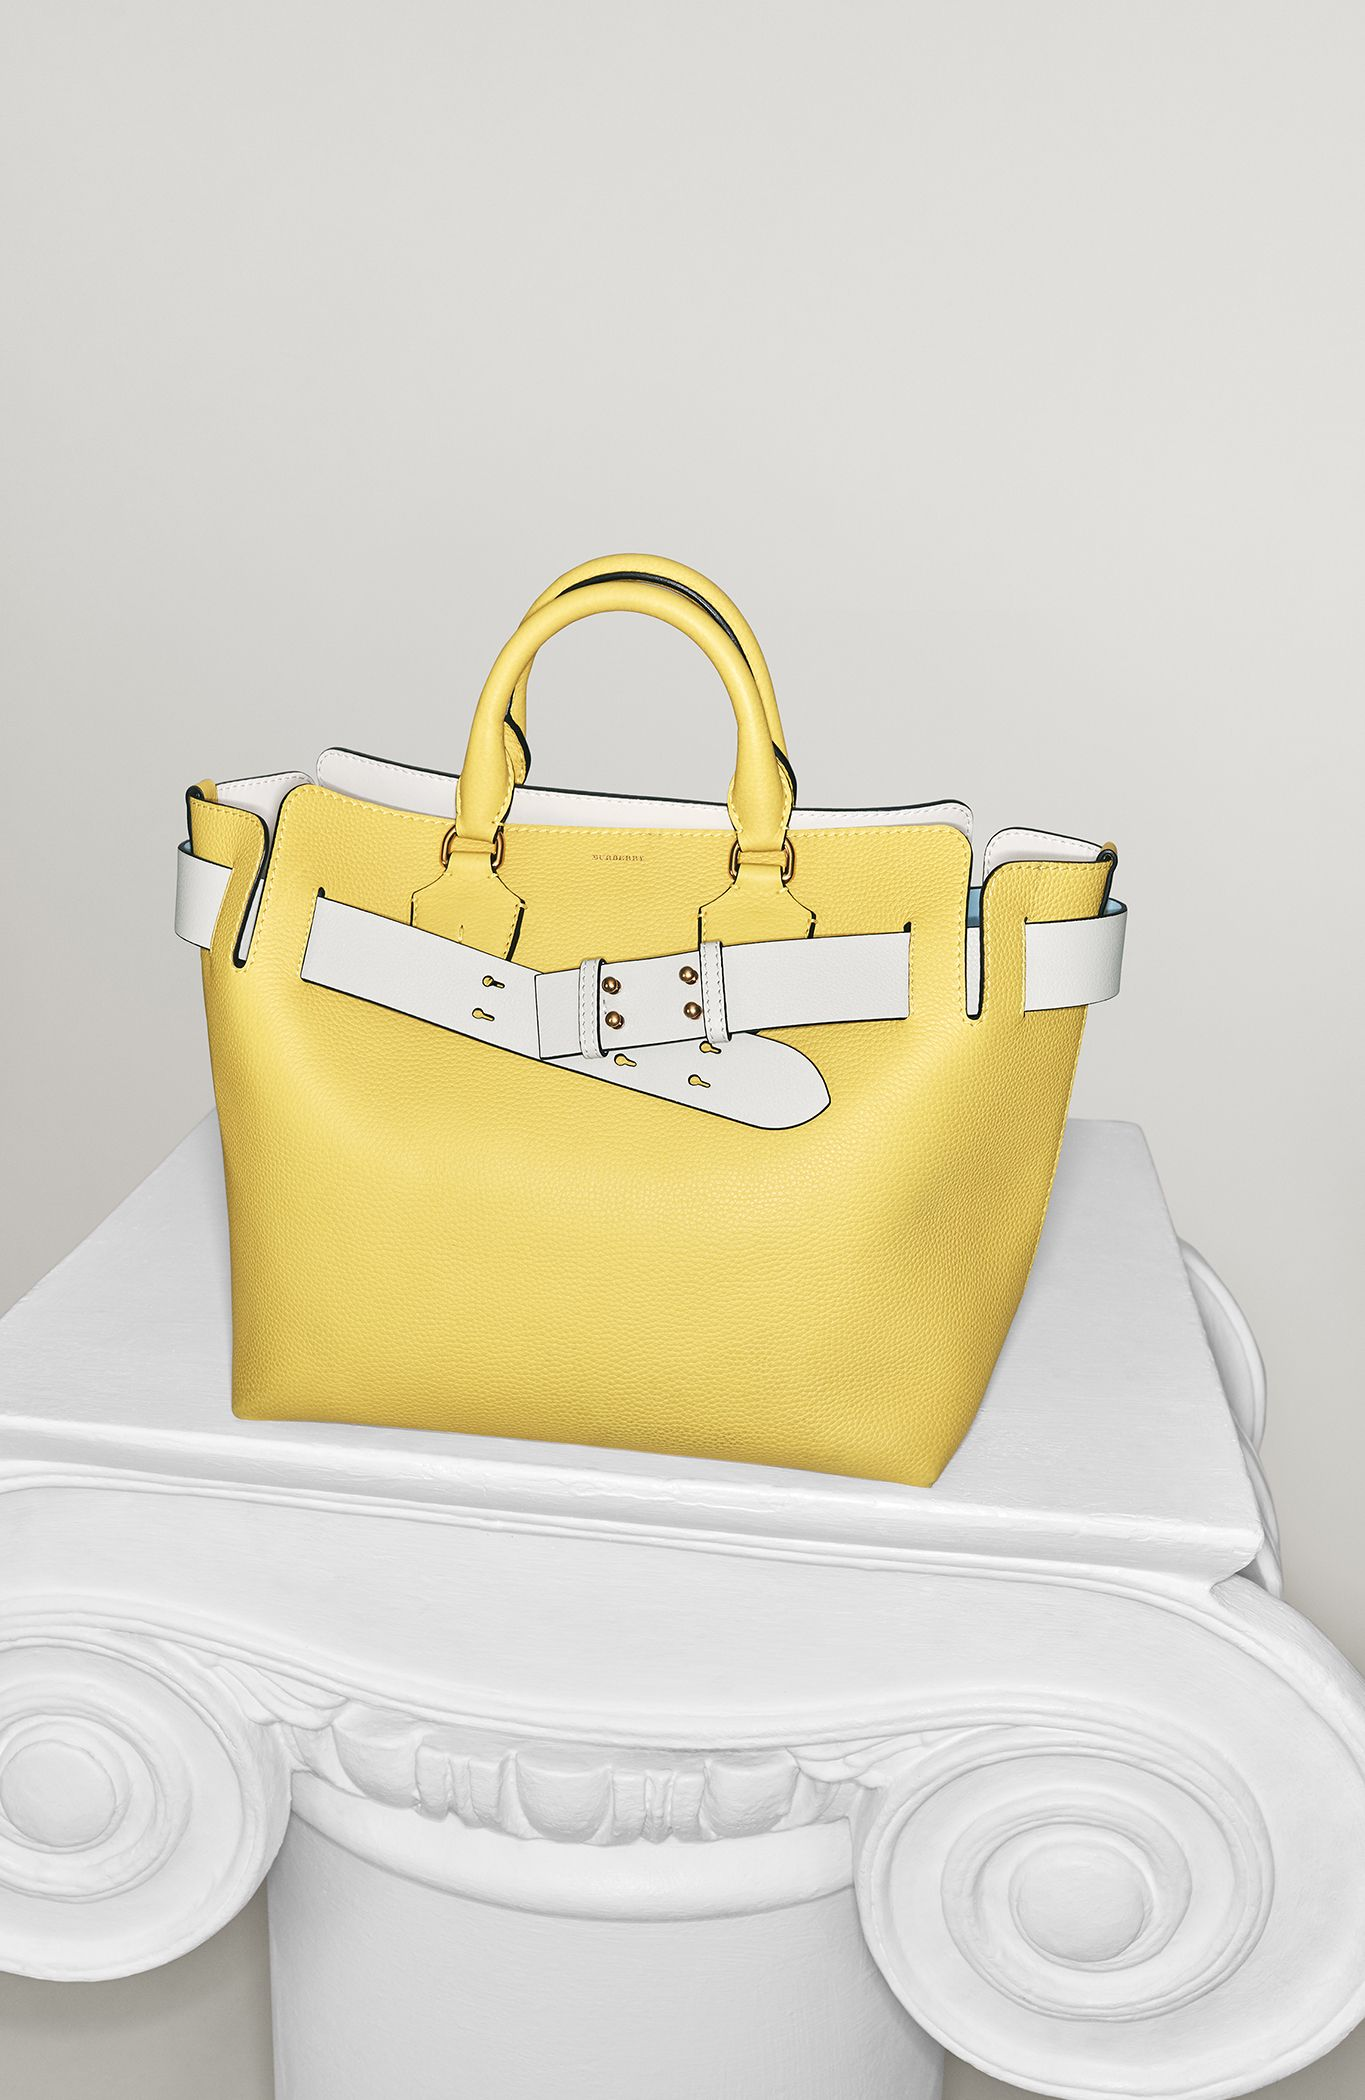 For a limited time, an additional contrast-coloured belt is included   TheBeltBag. A  Burberry belted tote ... cc948ae617